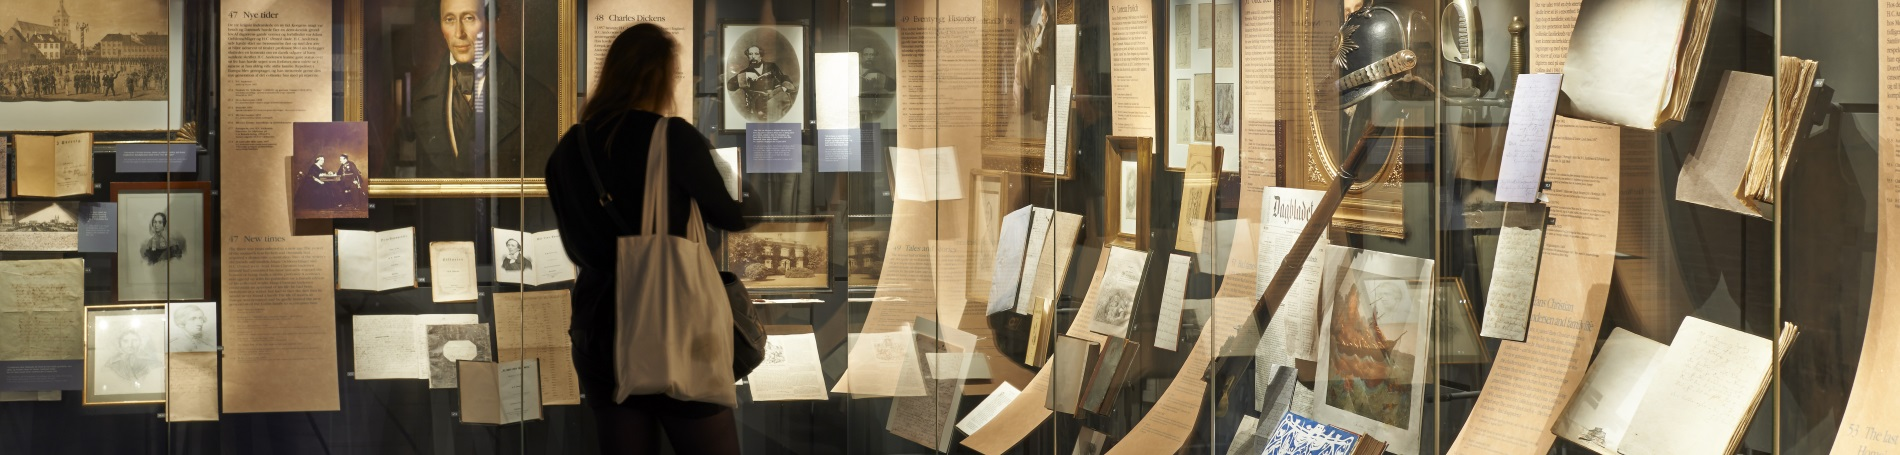 lady looking at a museum display of old artifacts